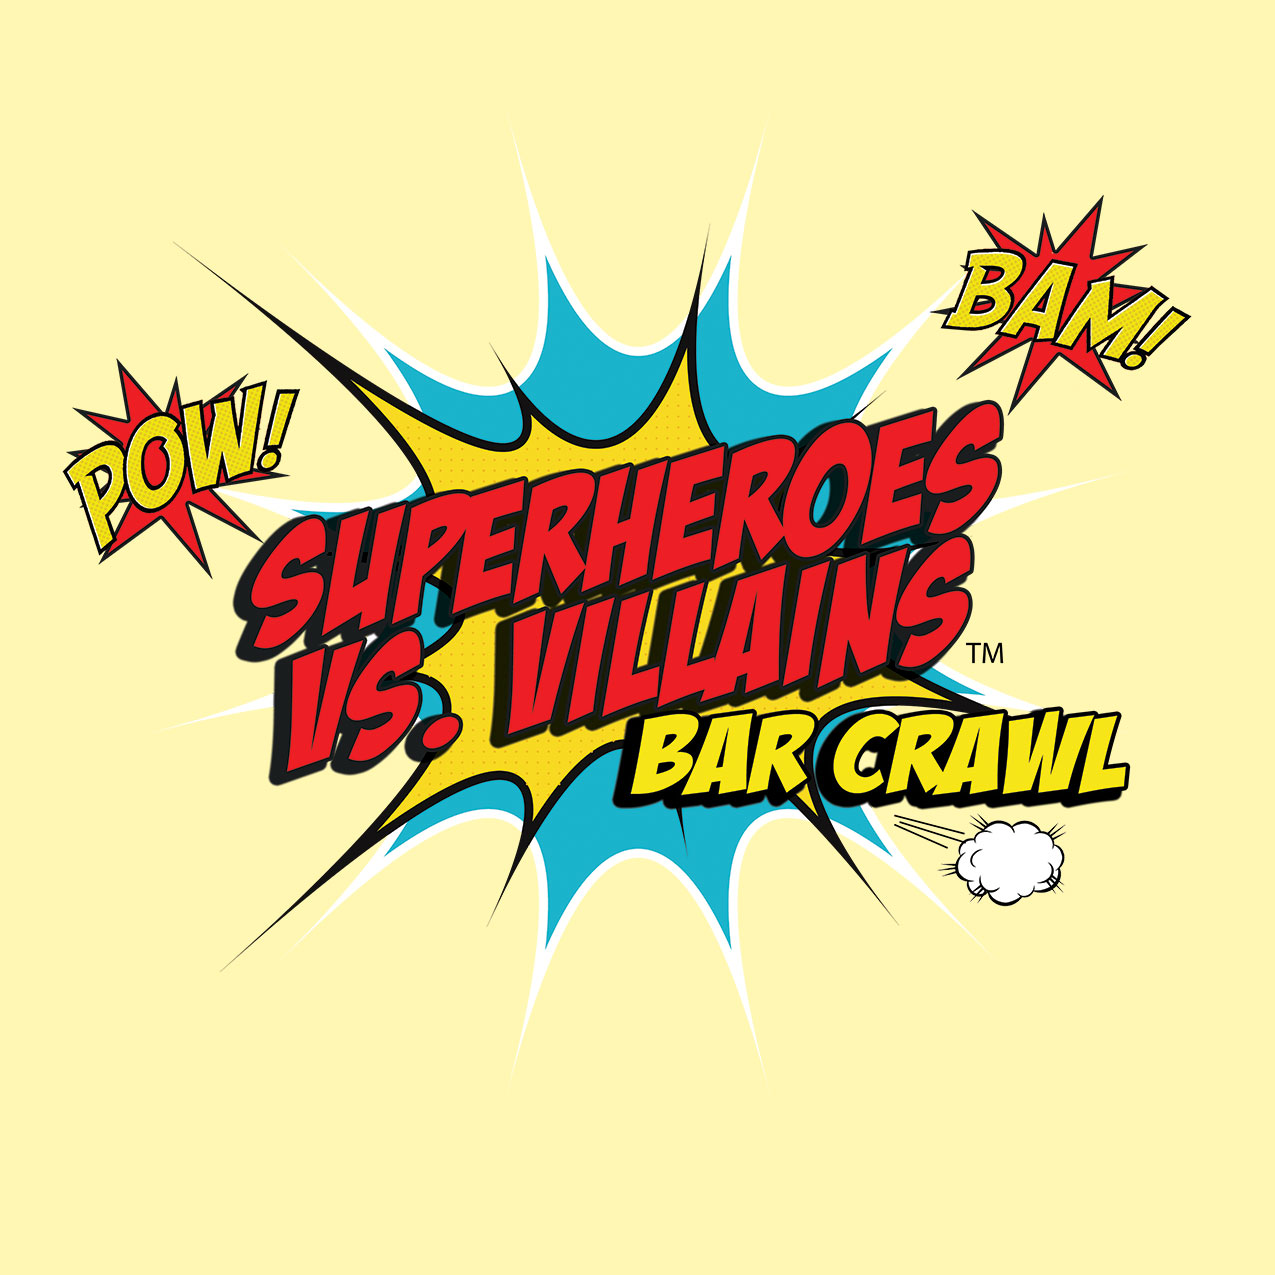 Superheroes vs. Villians Bar Crawl | 6.24.17 | 1pm - 6pm